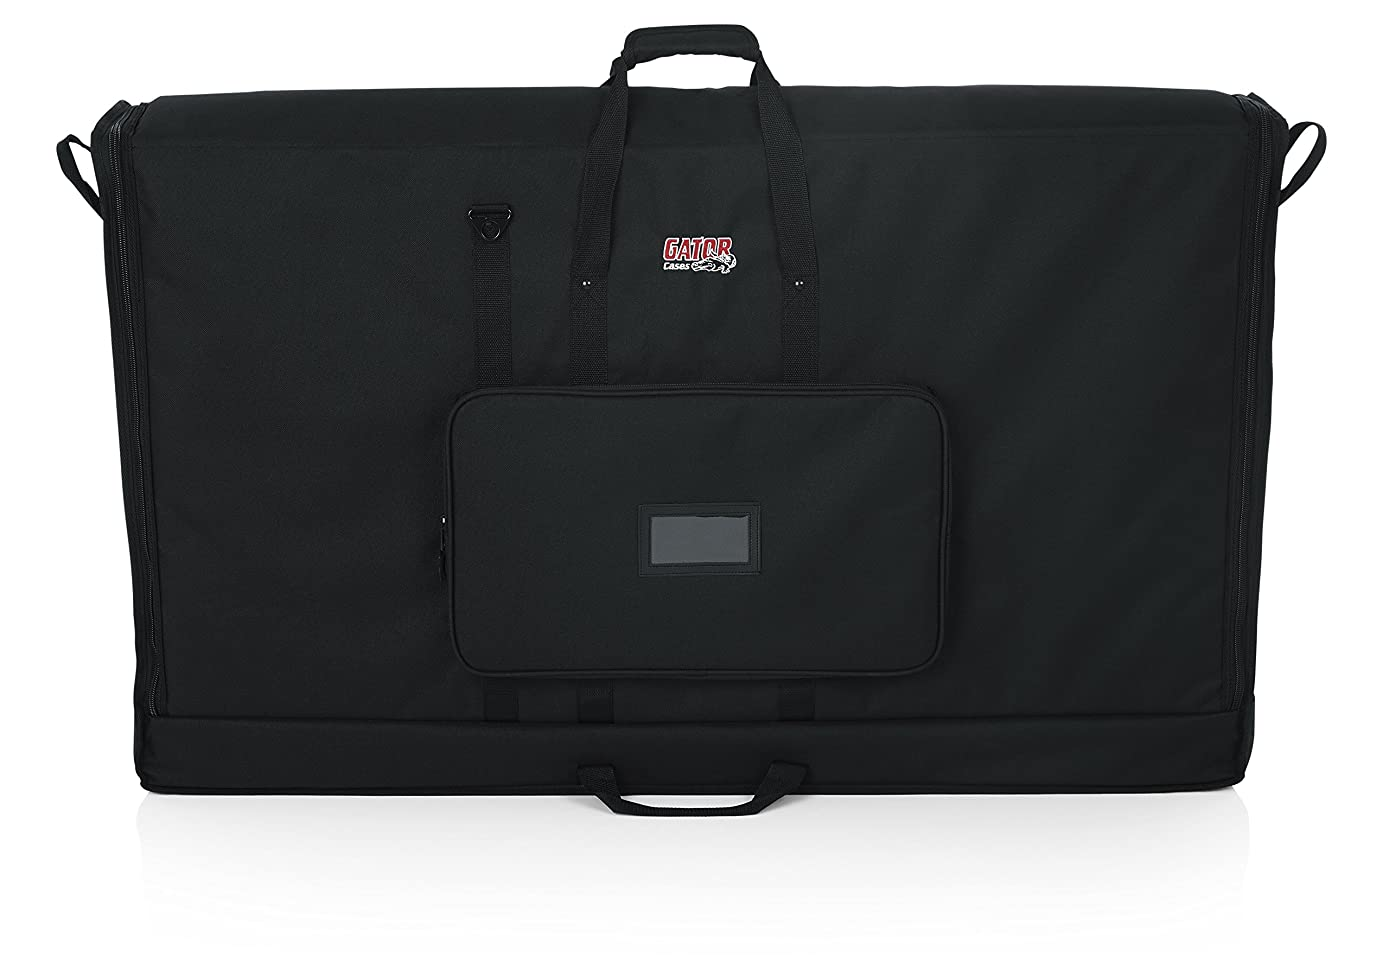 Gator Cases Padded Nylon Carry Tote Bag for Transporting LCD Screens, Monitors and TVs; Fits 50